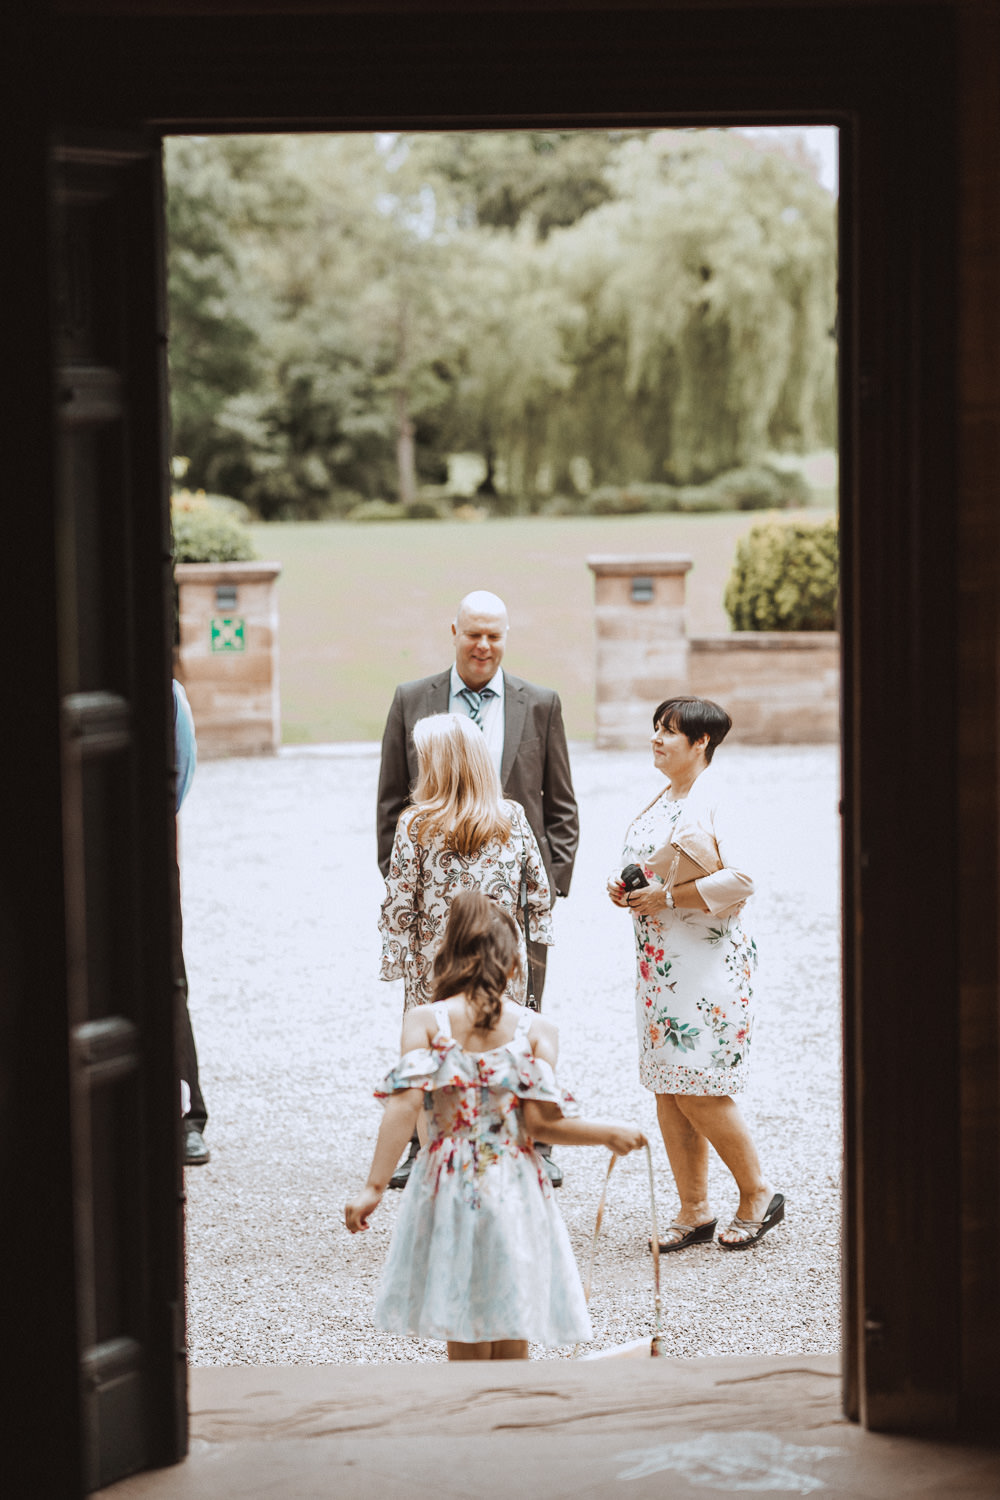 Guests outside at Inglewood Manor, Cheshire